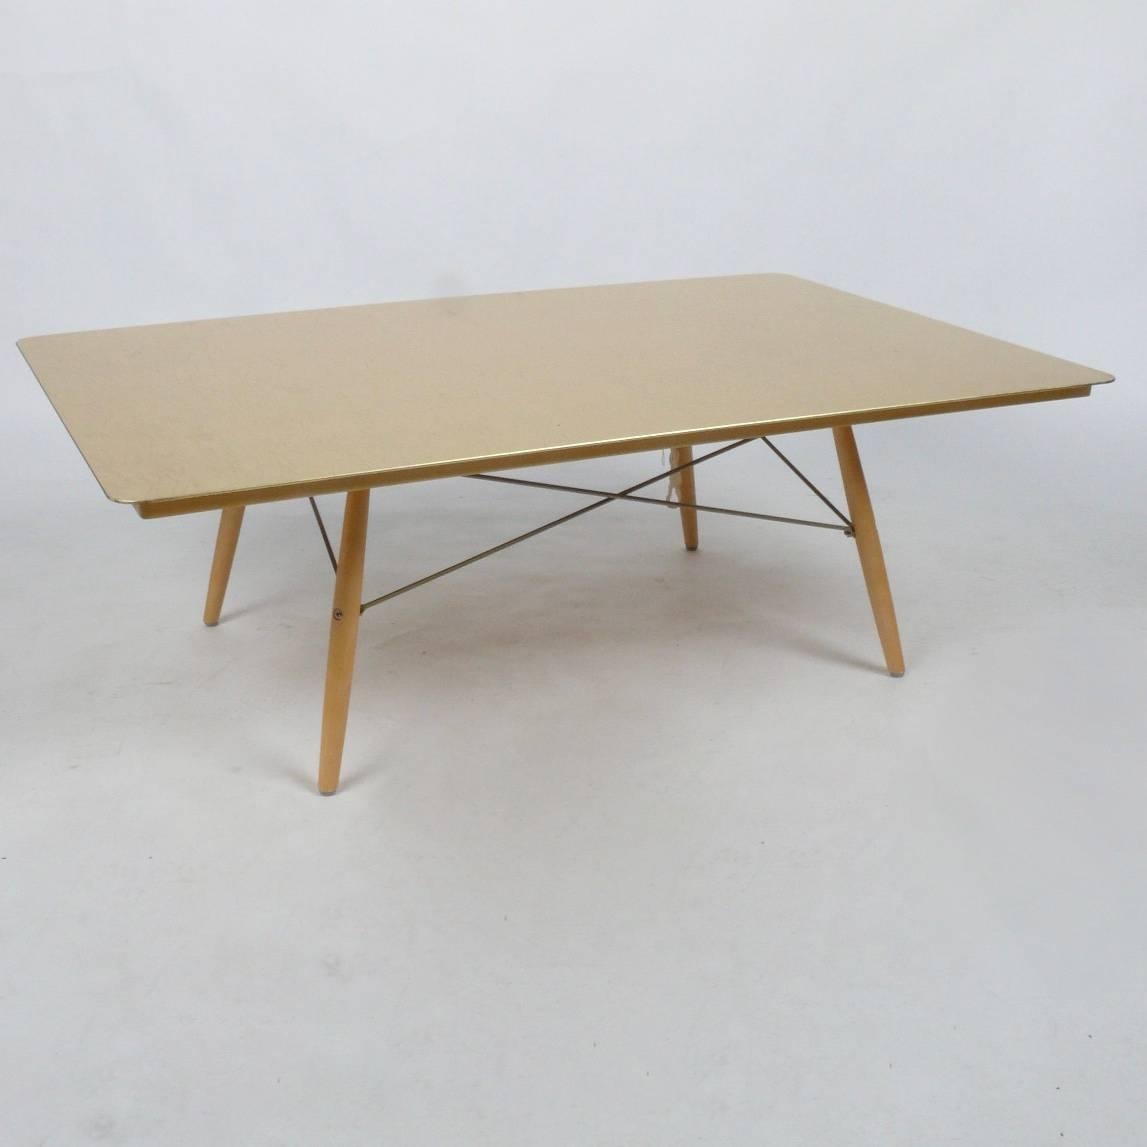 Eames house 50th anniversary coffee table at 1stdibs for Eames style coffee table